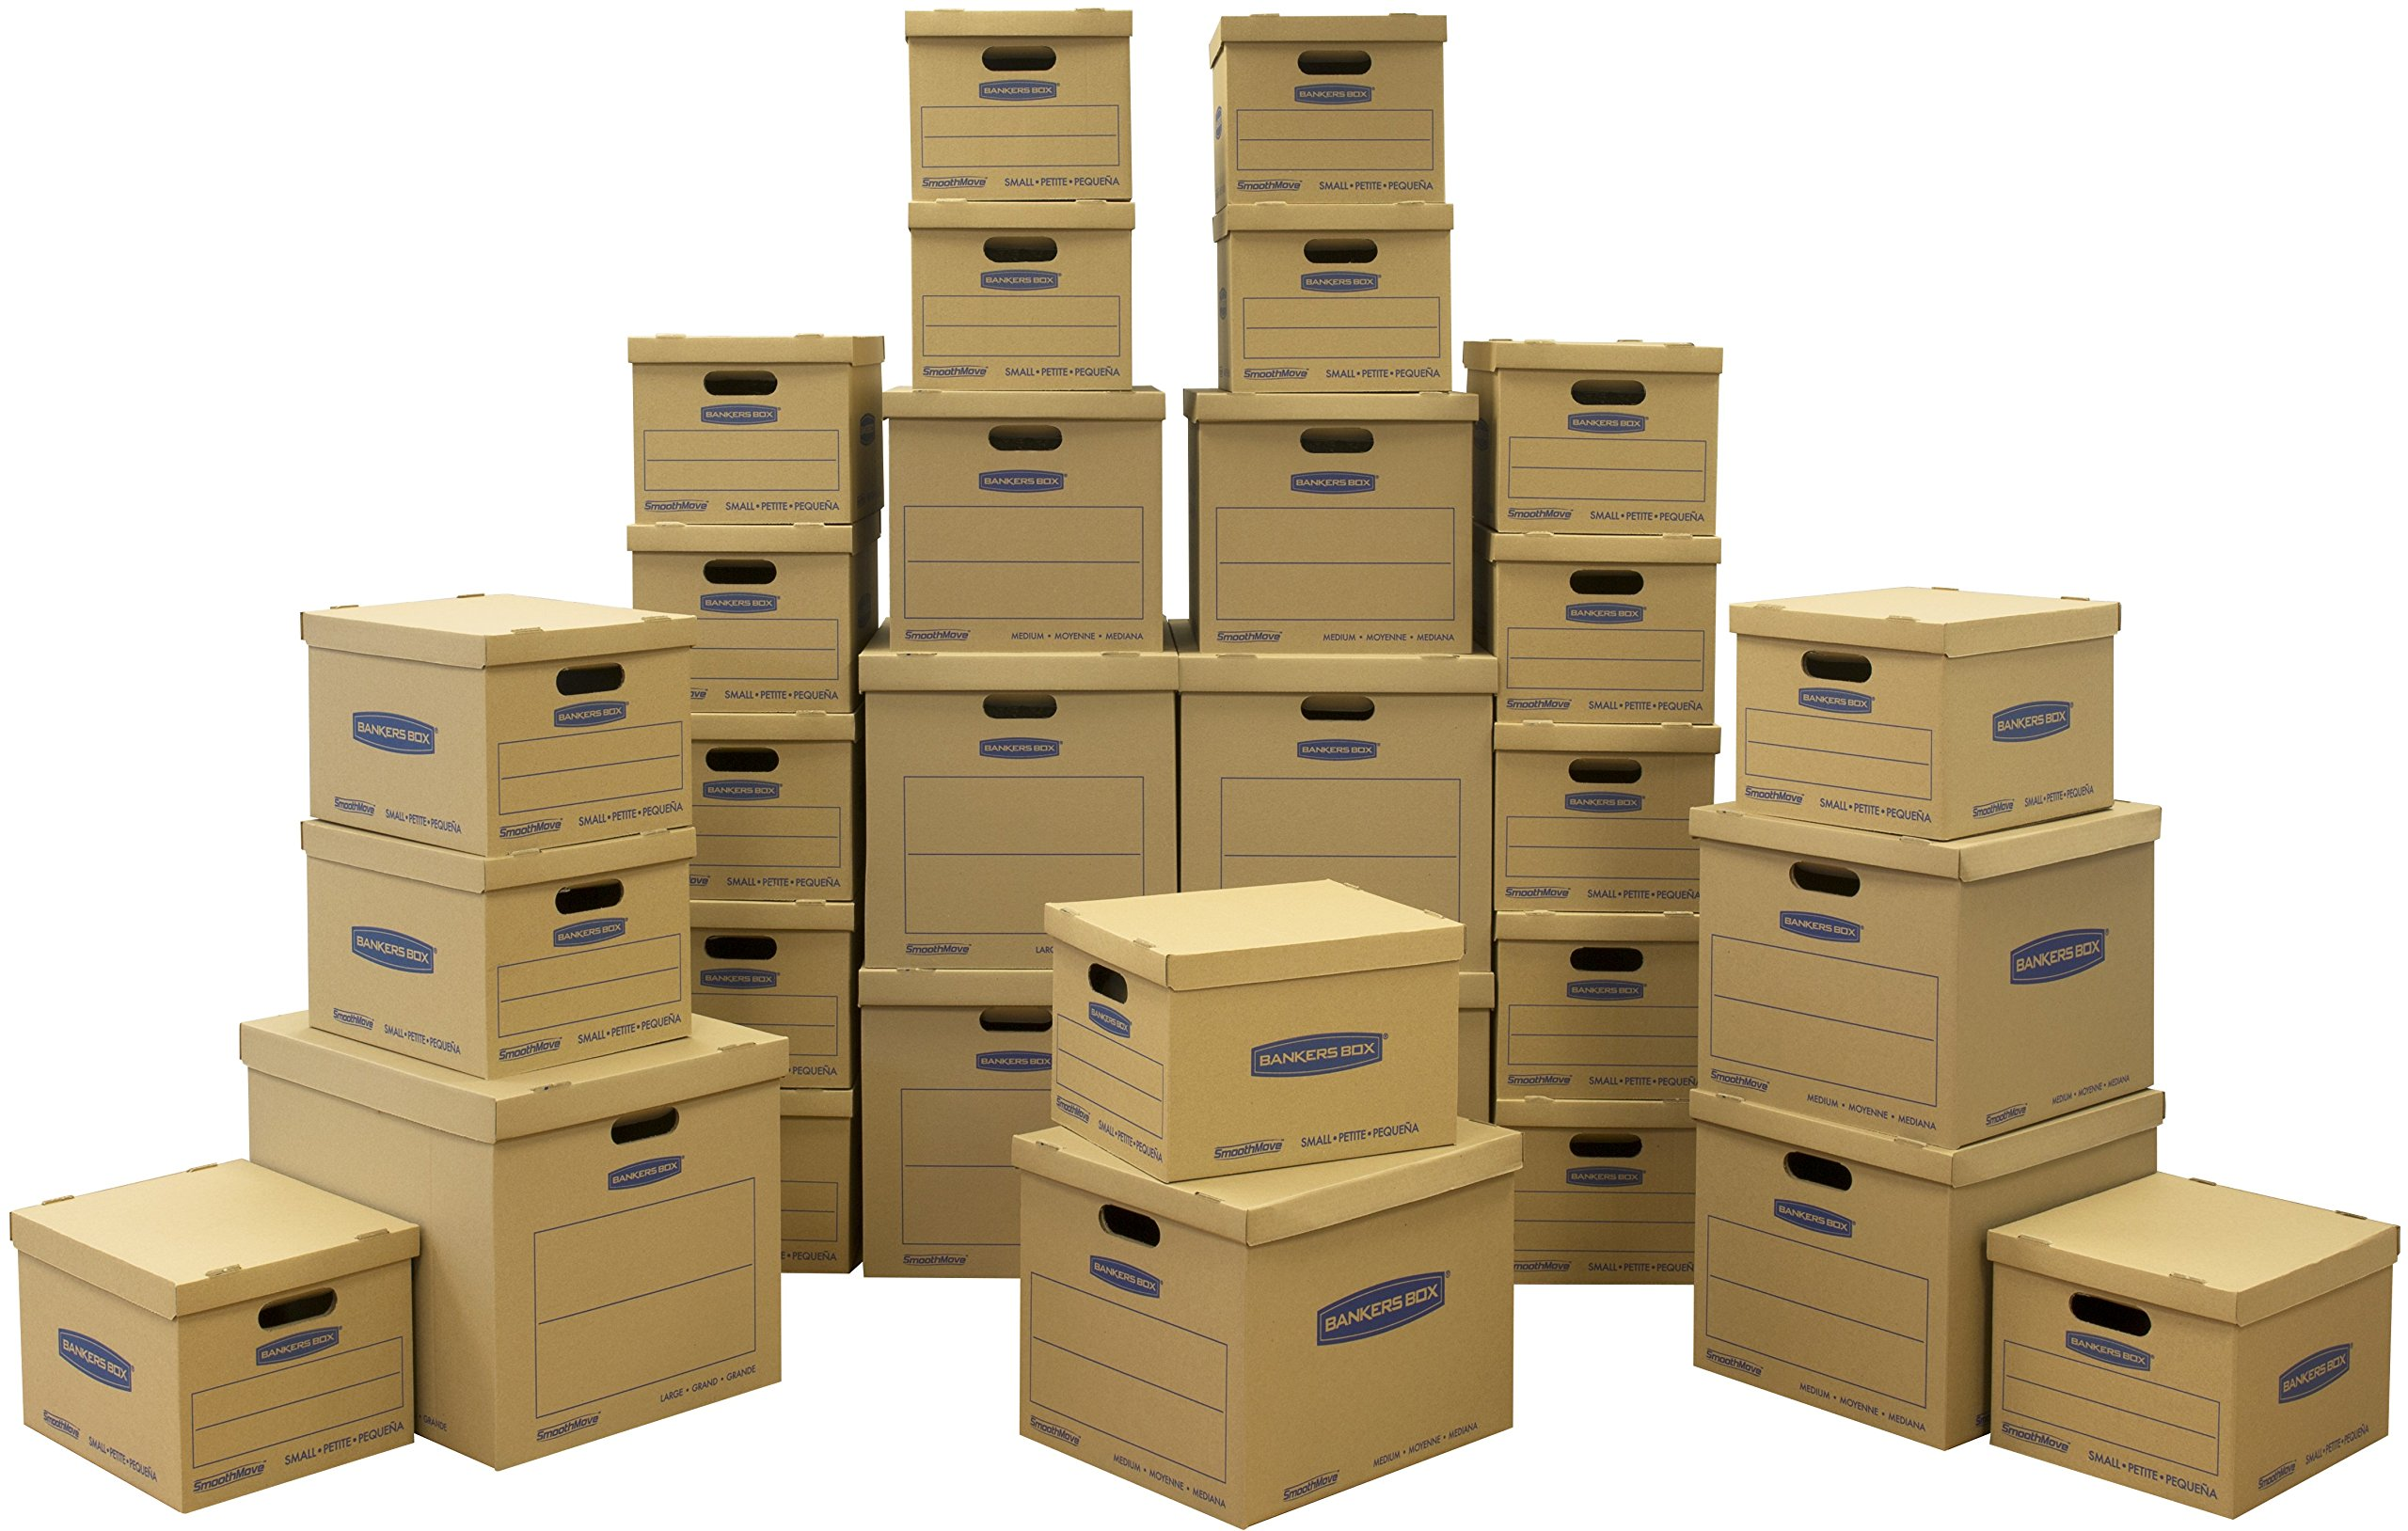 Bankers Box SmoothMove Classic Moving Kit Boxes, Tape-Free Assembly, Easy Carry Handles,)20 Small 5 Medium 5 Large, 30 Pack (7716501 by Bankers Box